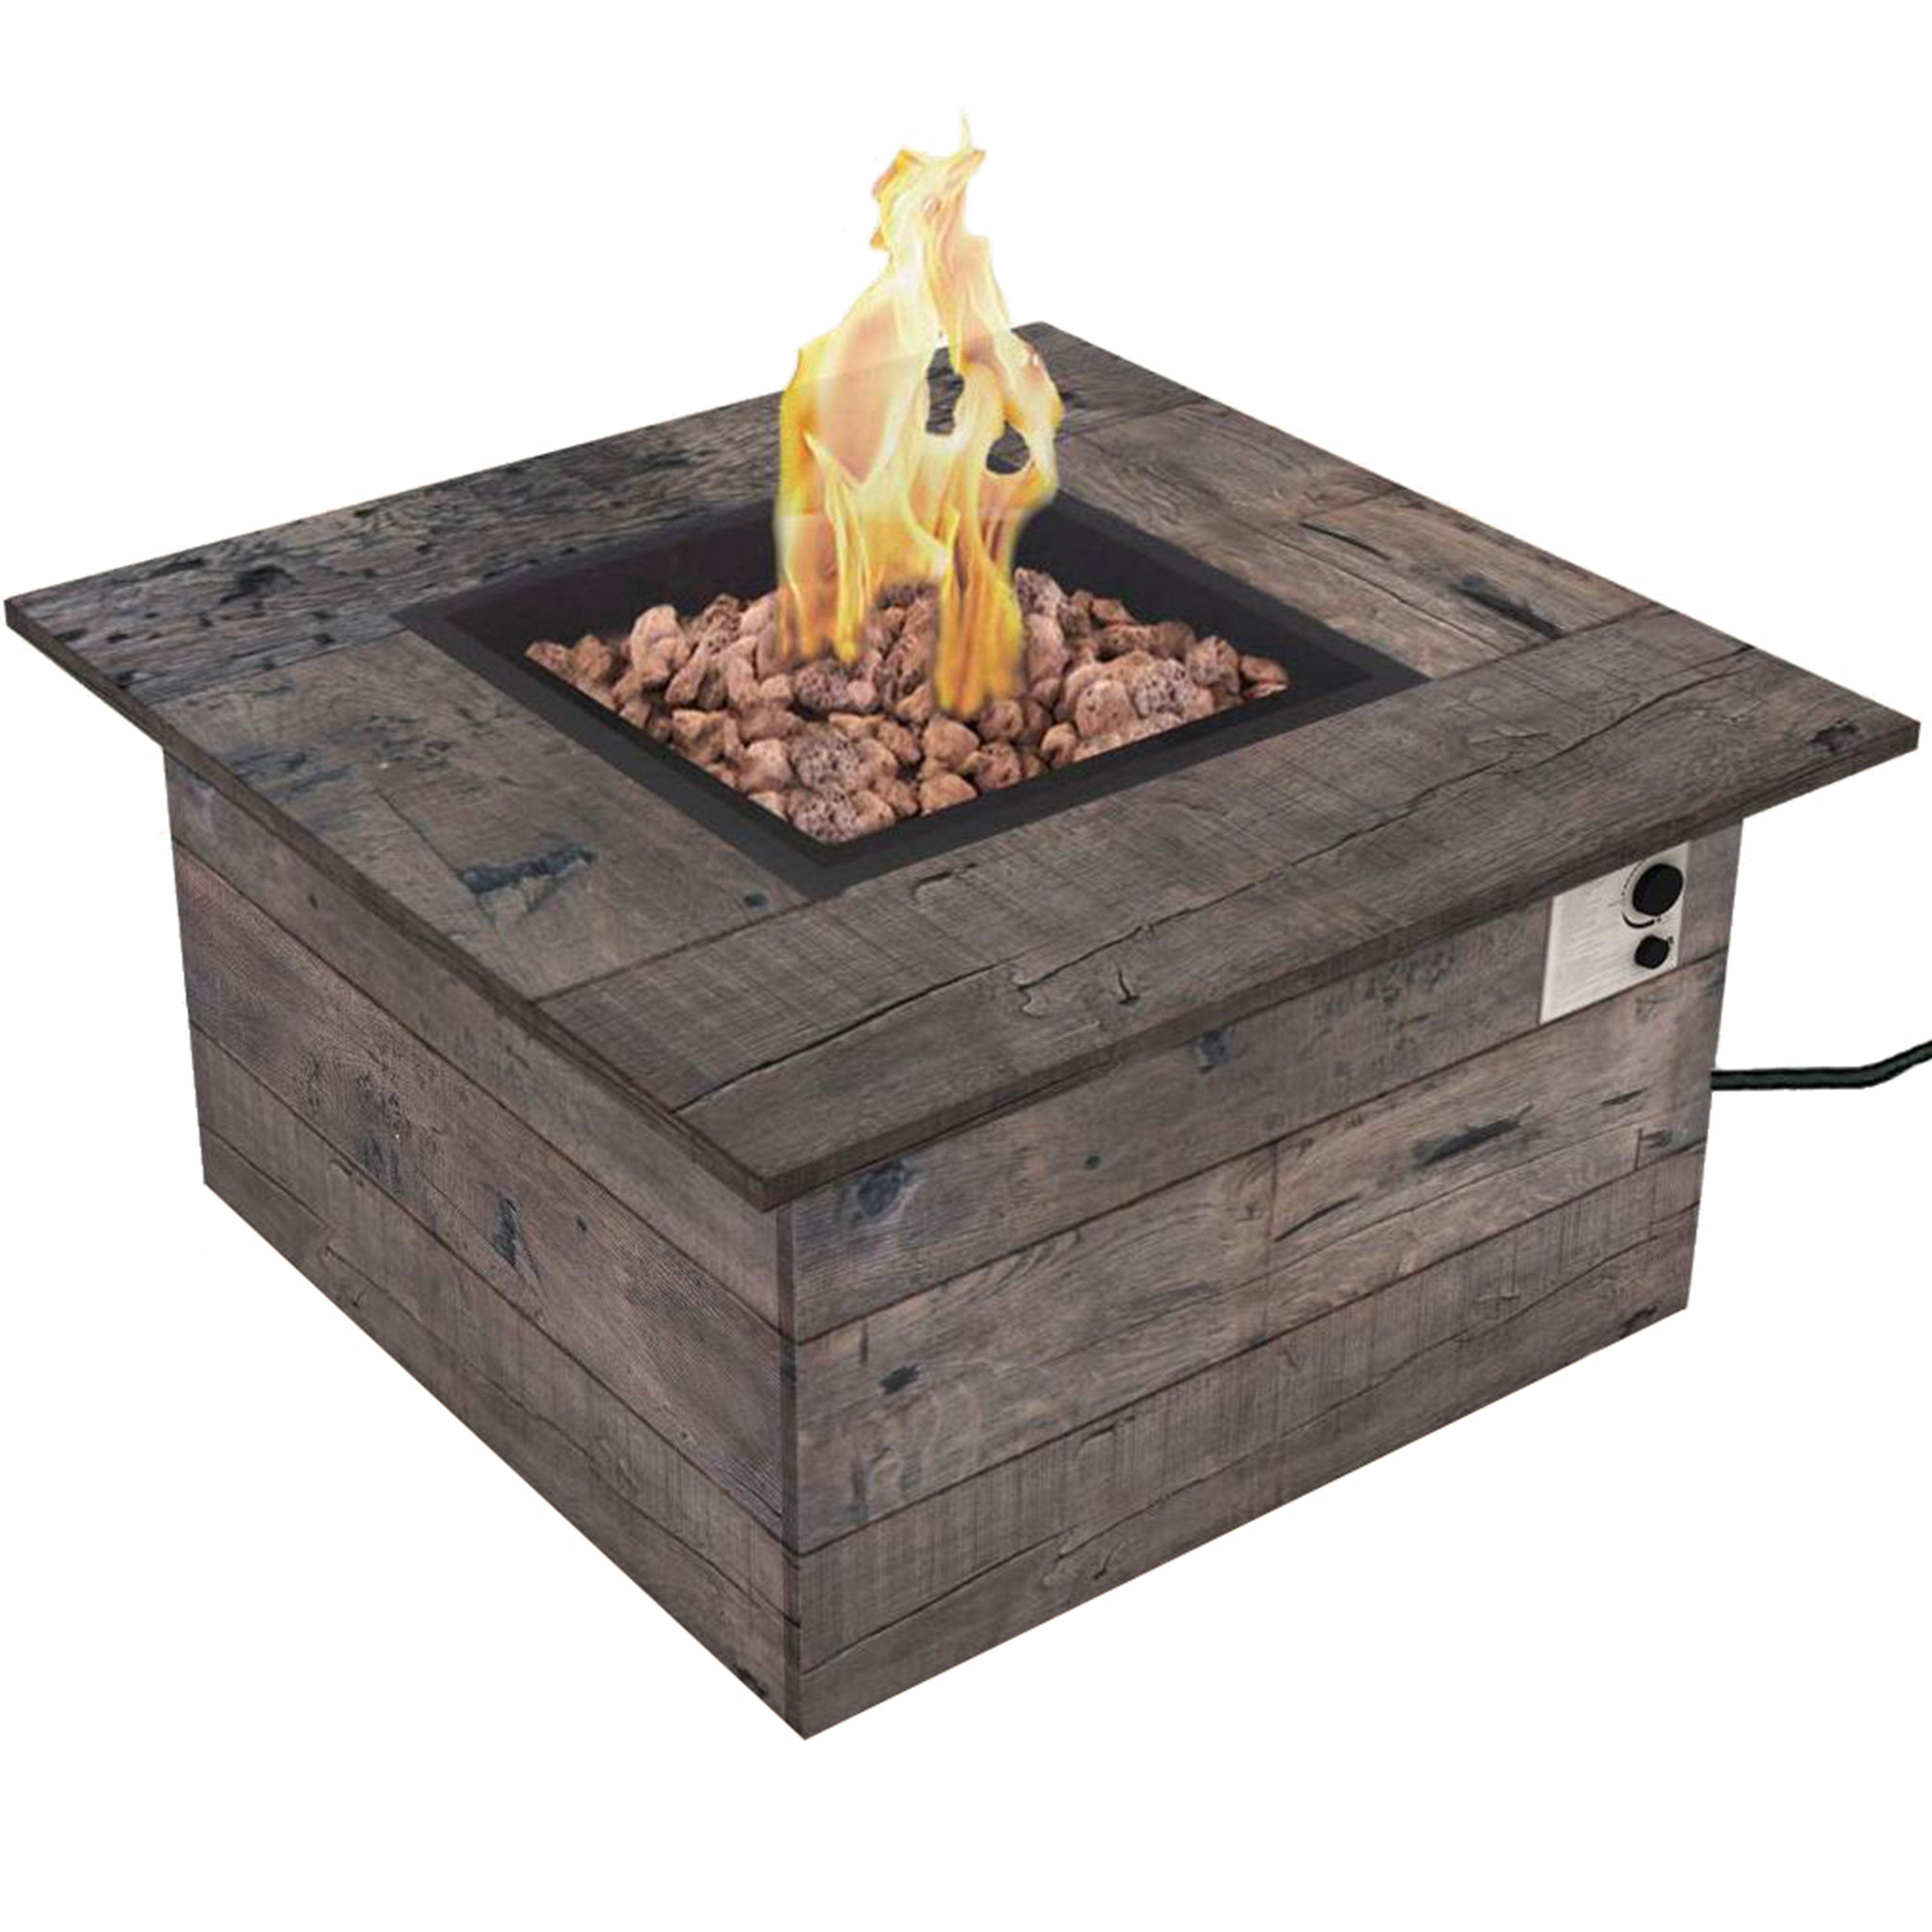 Bond Manufacturing Galleon Wood Propane Gas Fire Table